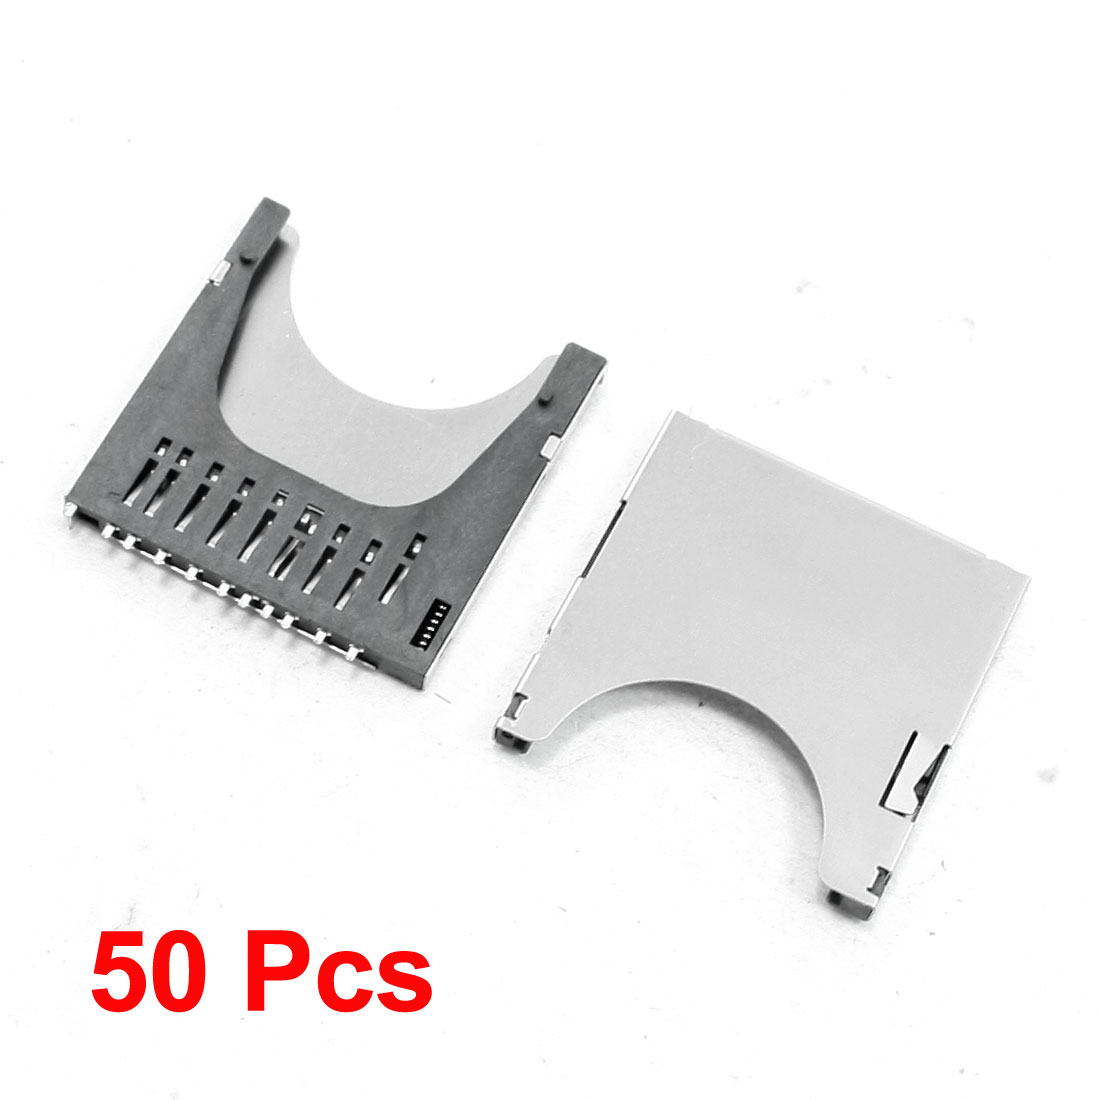 50 Pcs Push-push Type Stainless Steel SD Memory Card Sockets Connectors